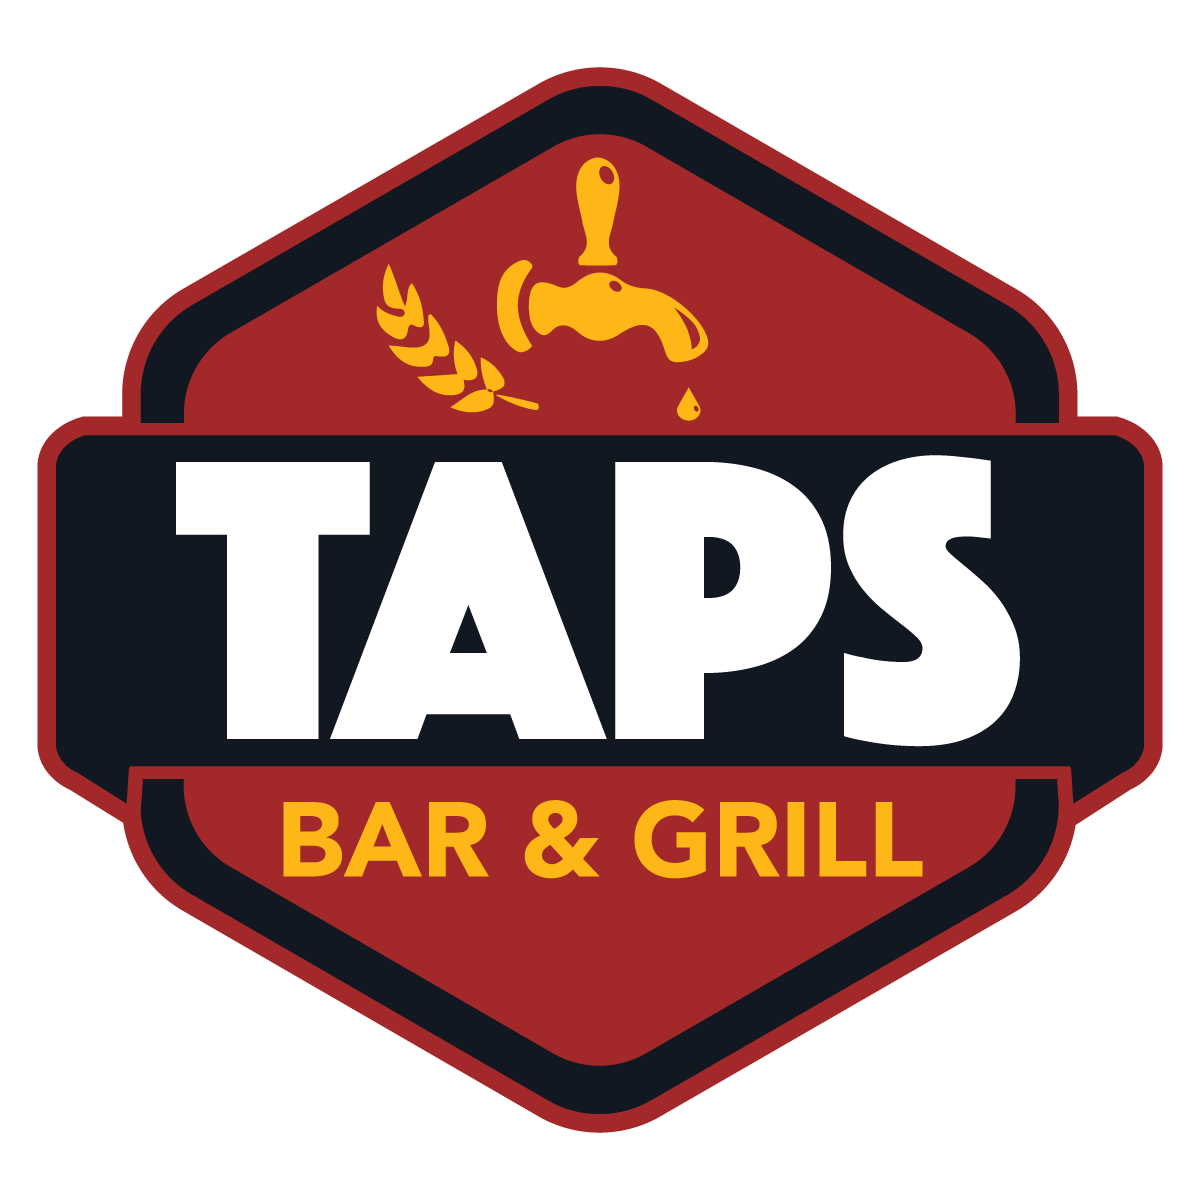 Taps Bar & Grill.